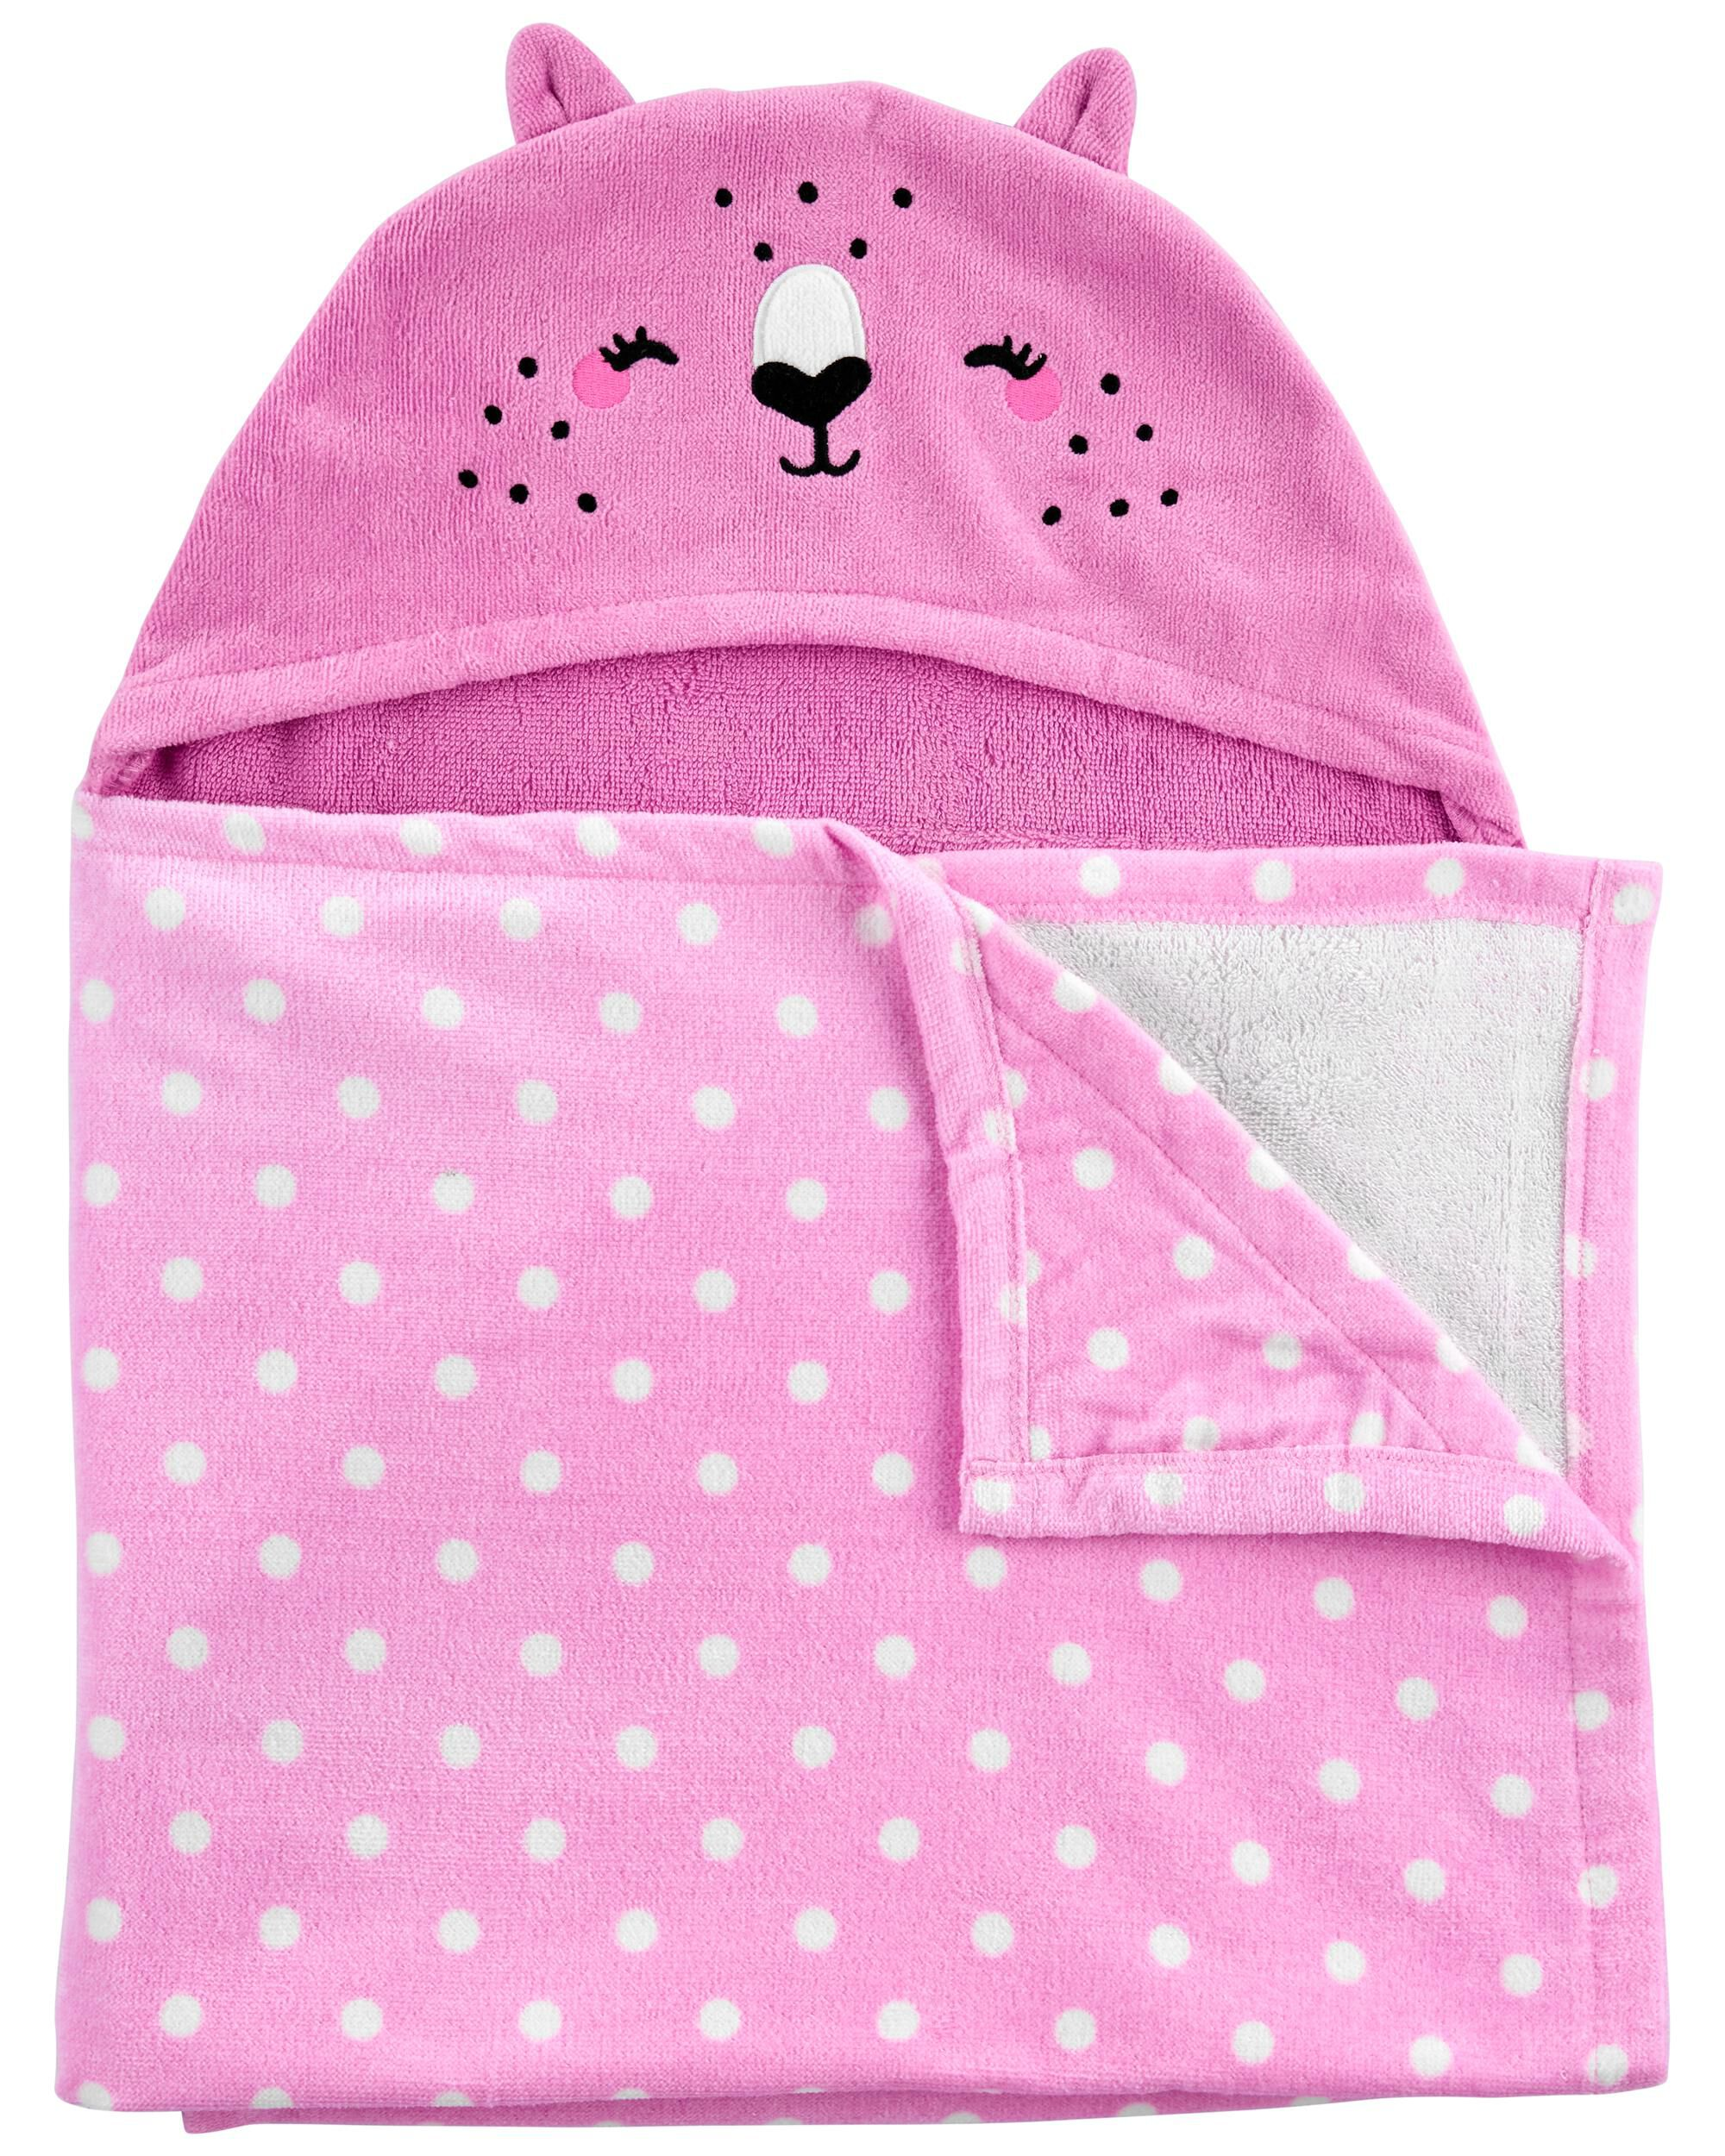 Carters Cat Hooded Terry Towel